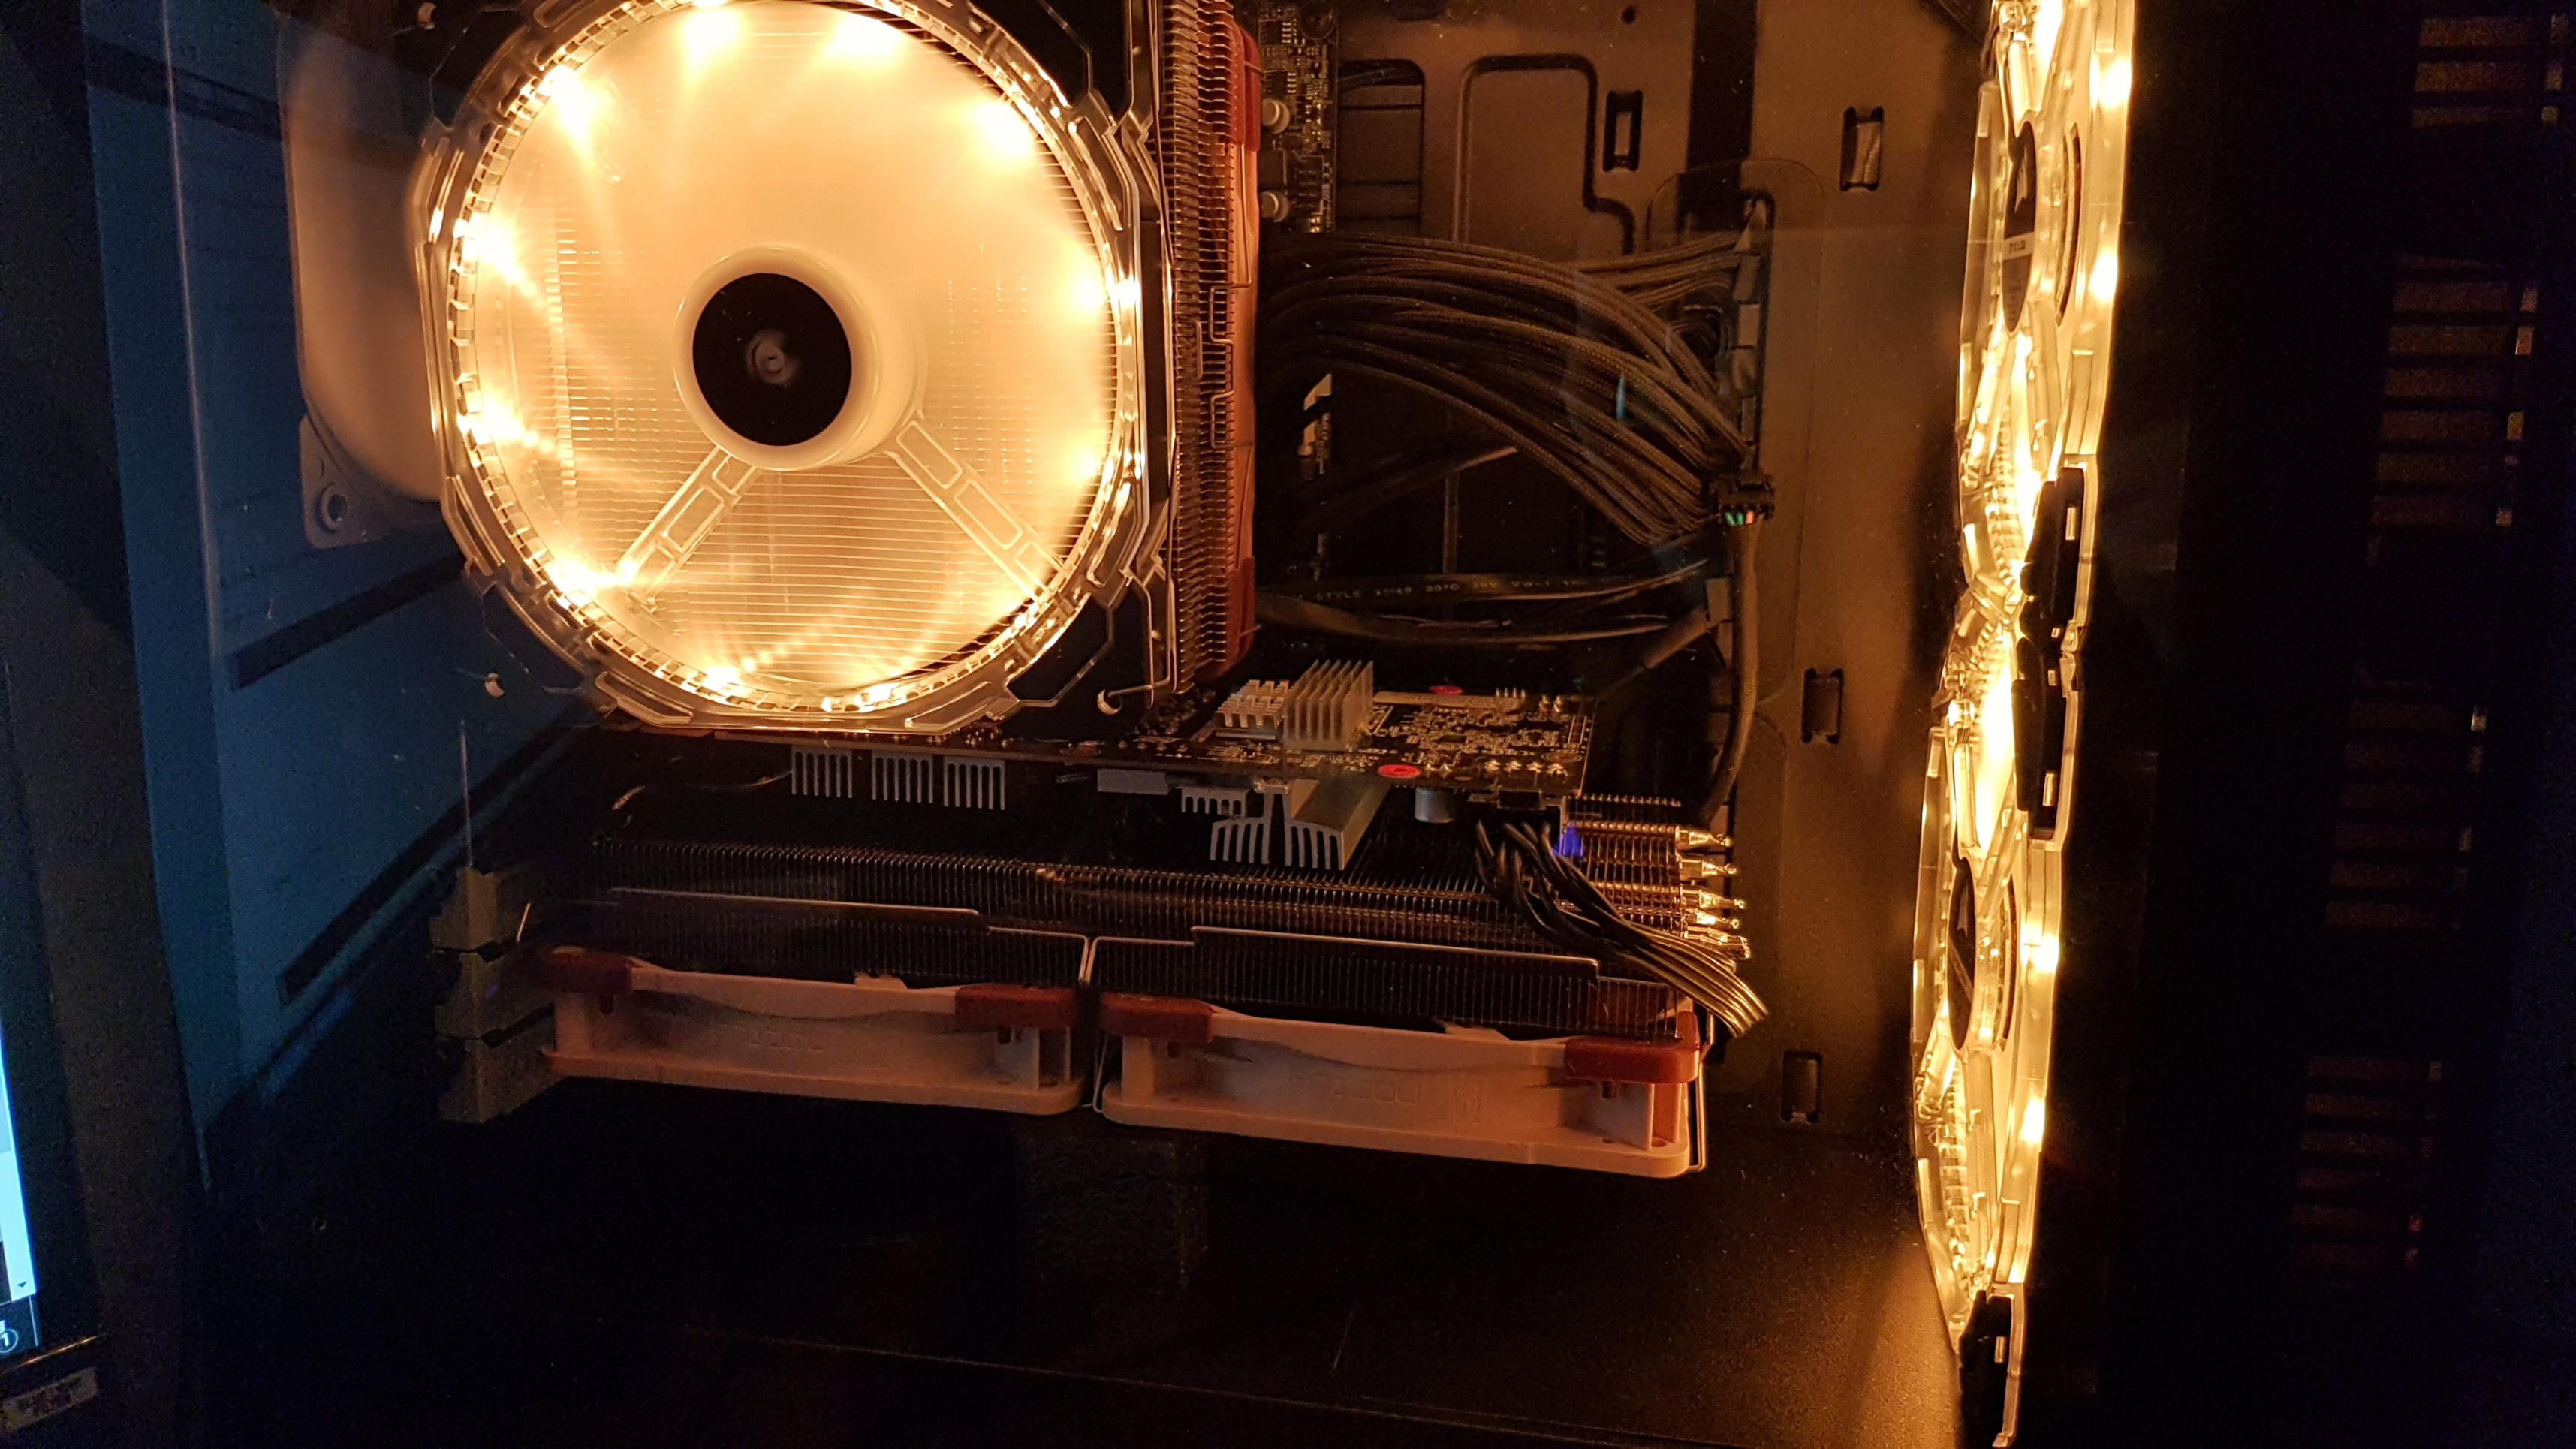 How To Flash 1070 Bios